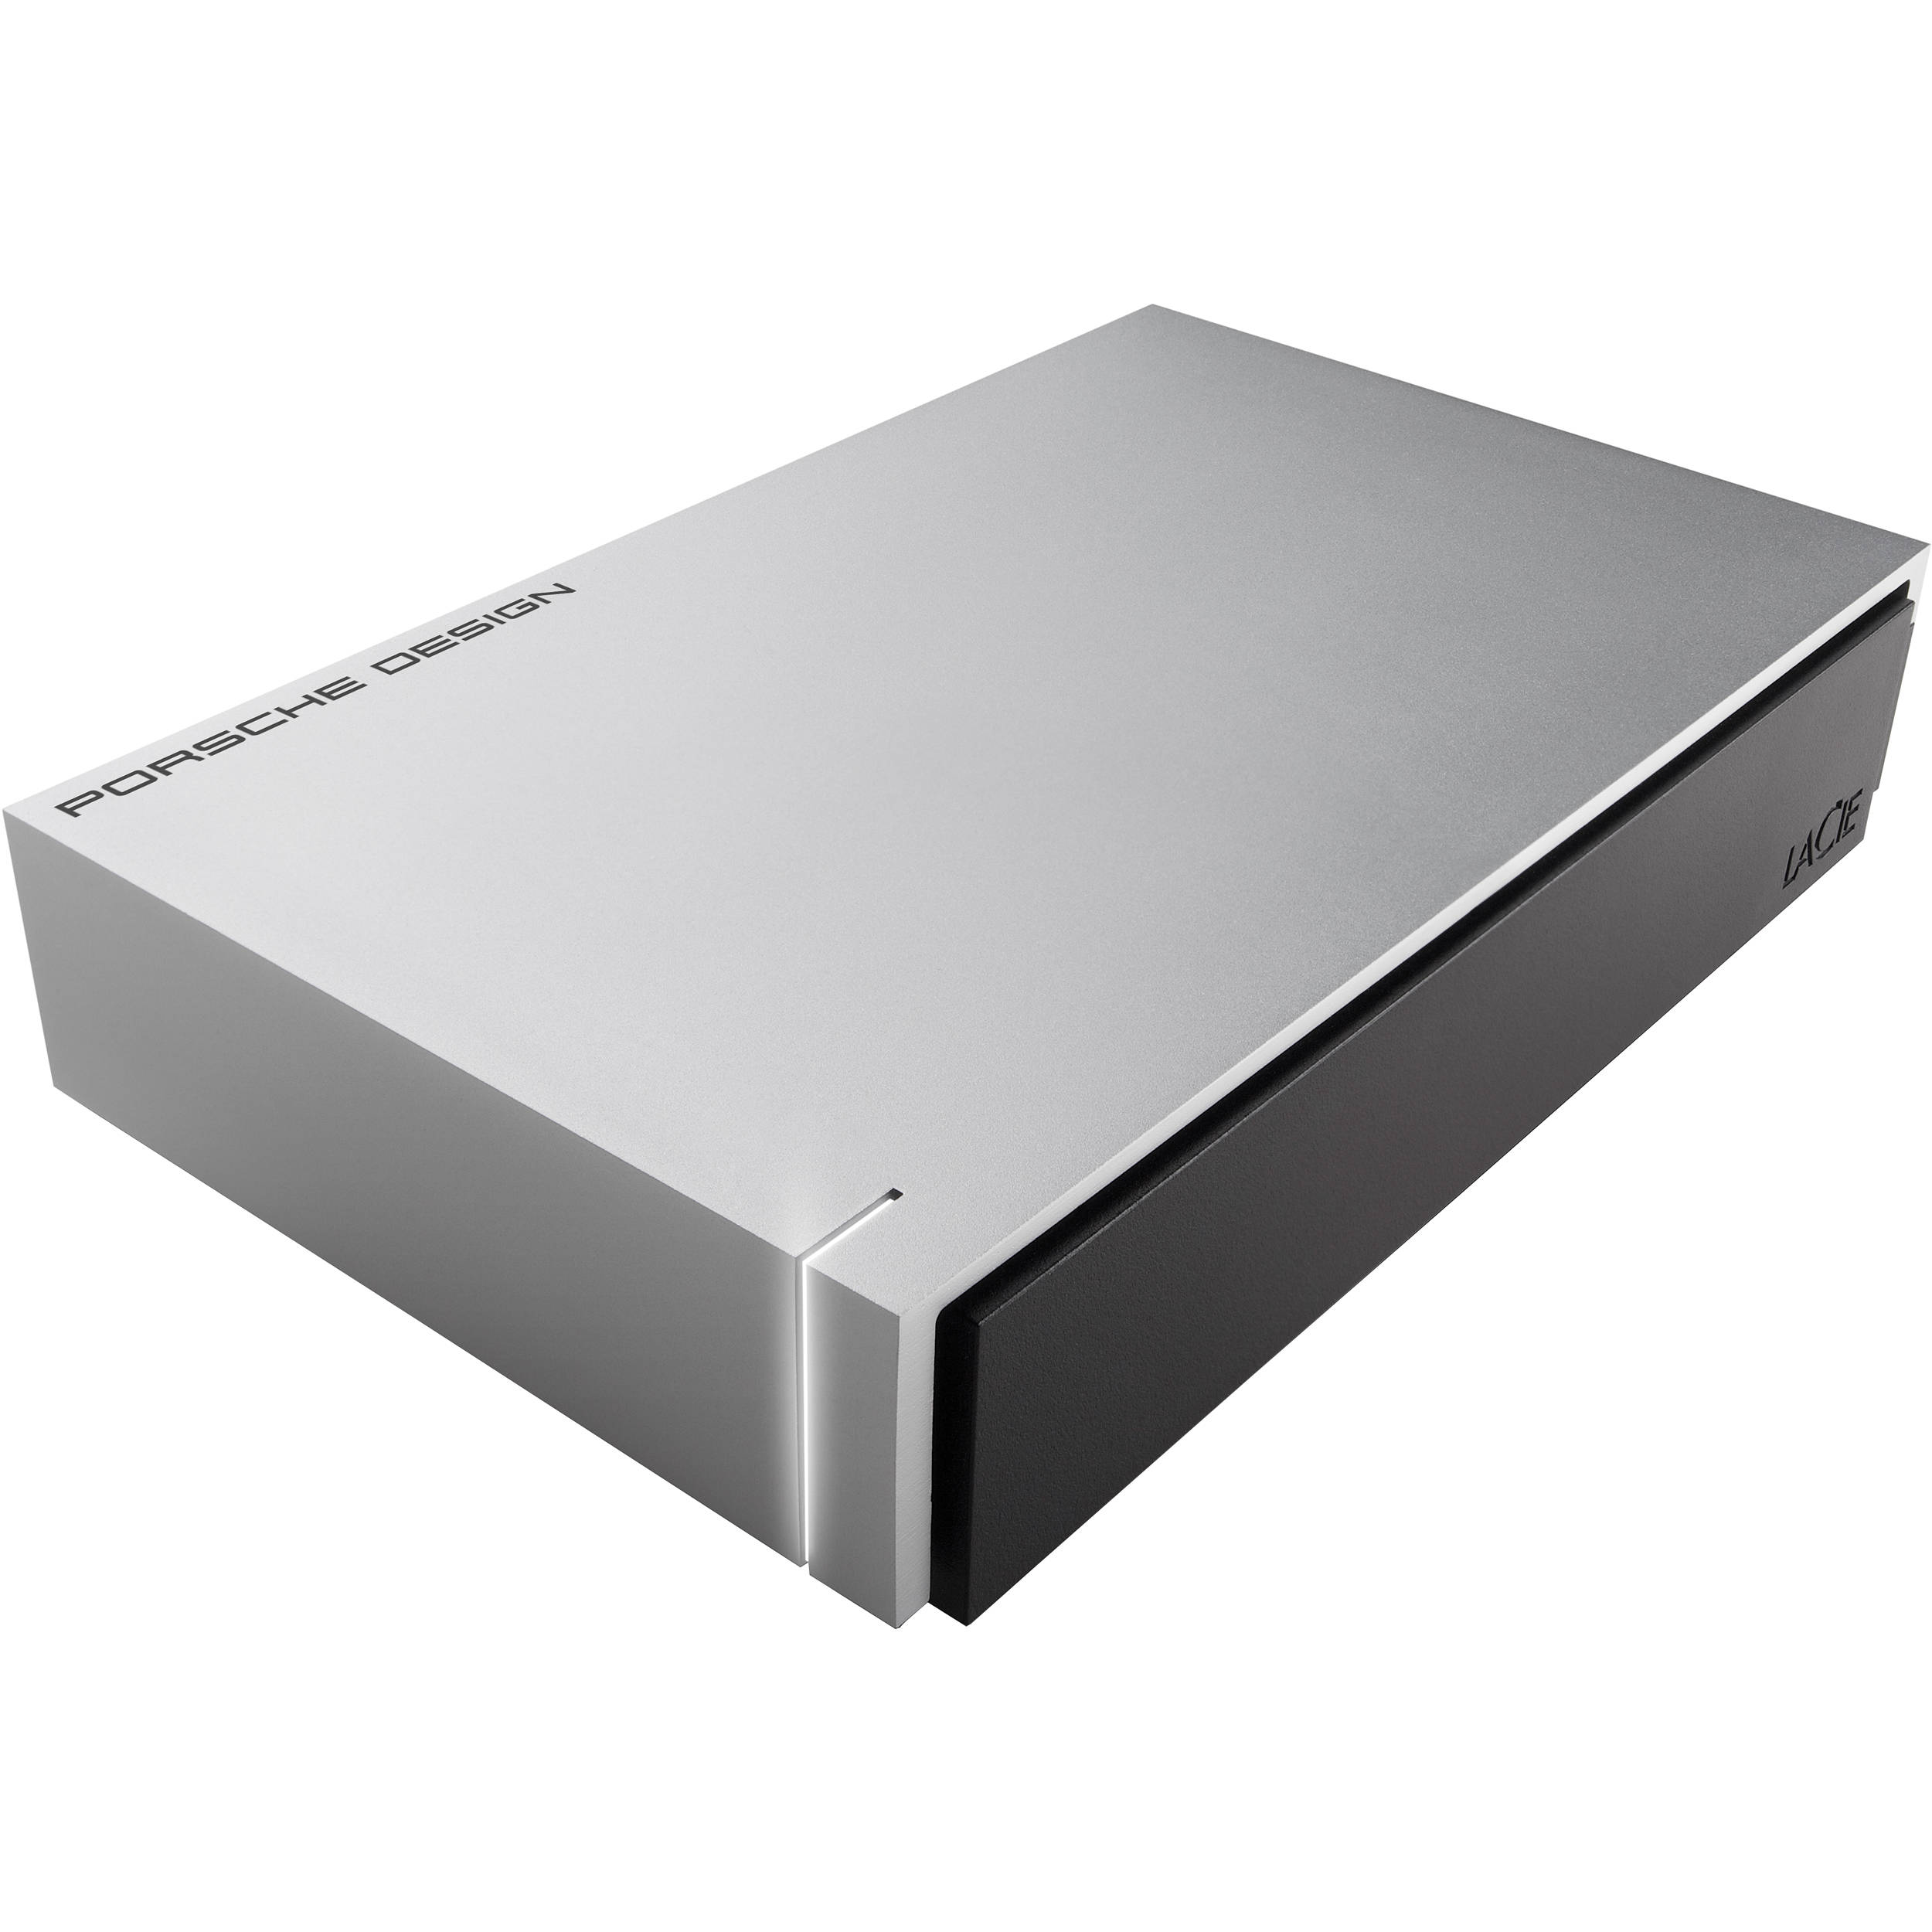 Ext. HDD LaCie Porsche Design Desktop 4TB USB 3.0